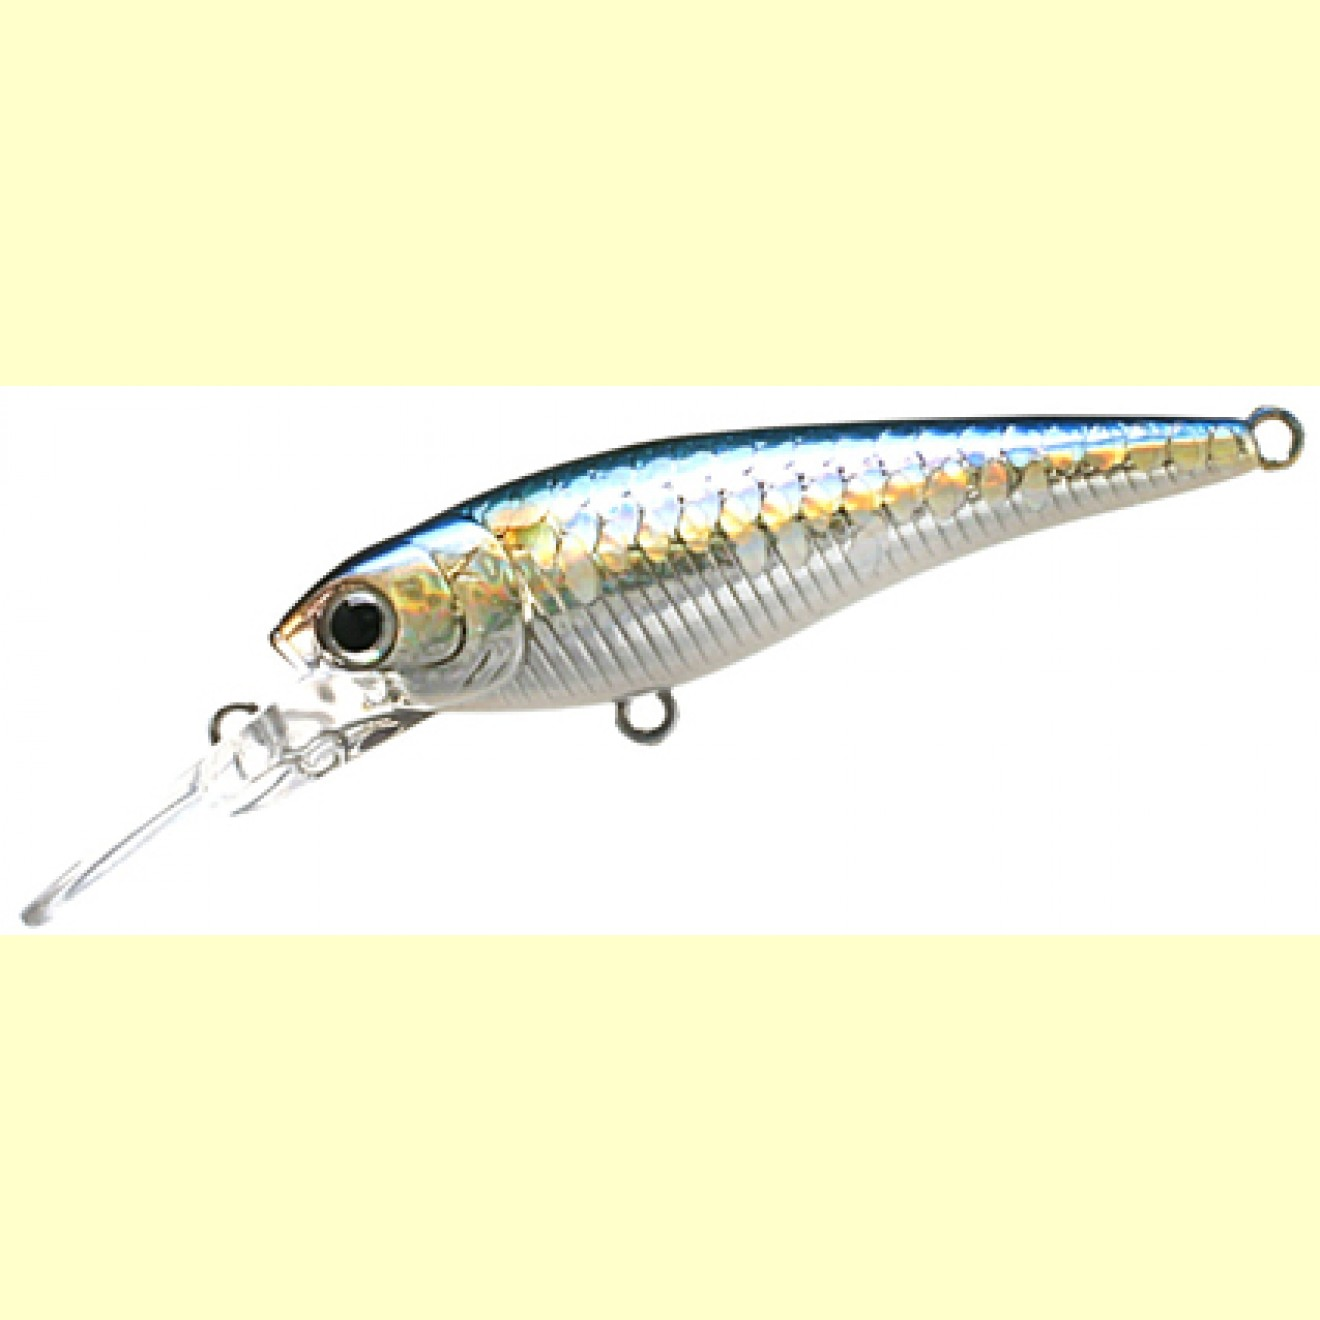 Bevy Shad 50 SP - MS AMERICAN SHAD - LUCKY CRAFT